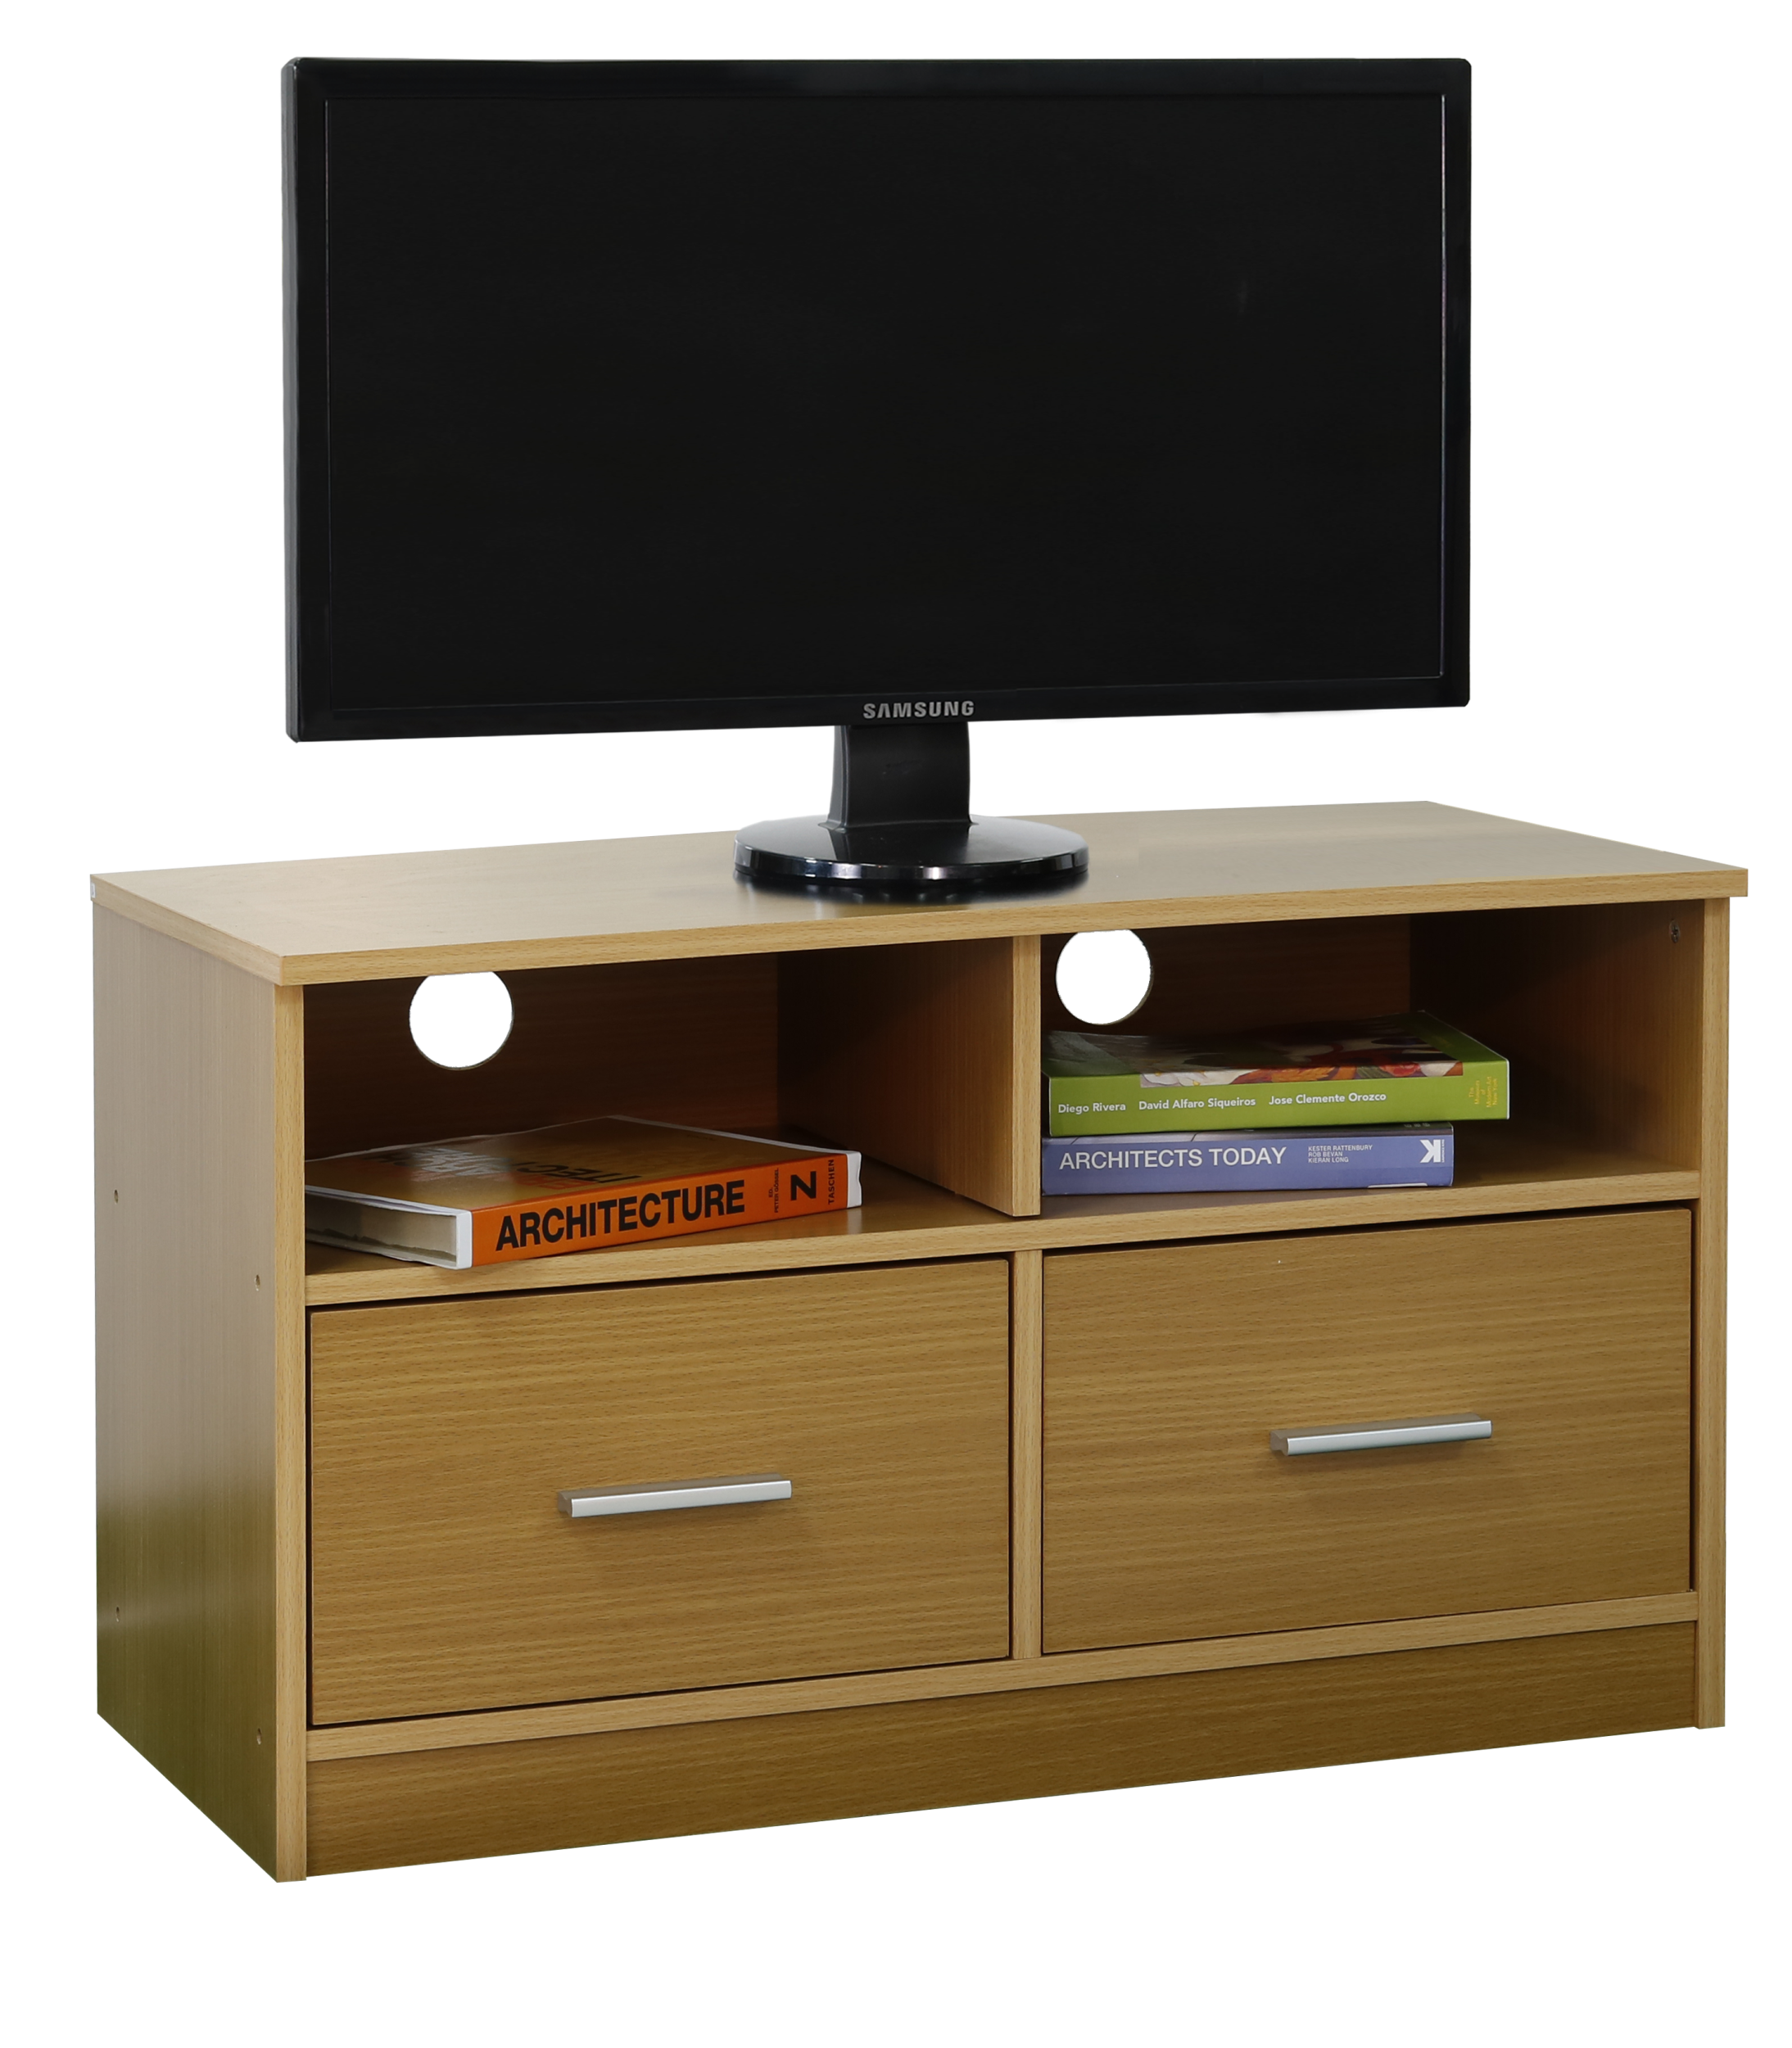 Groovy Tv Stand Wooden Cabinet With 2 Drawers Shelf Storage Entertainment Unit 5 Colour Finishes Download Free Architecture Designs Grimeyleaguecom